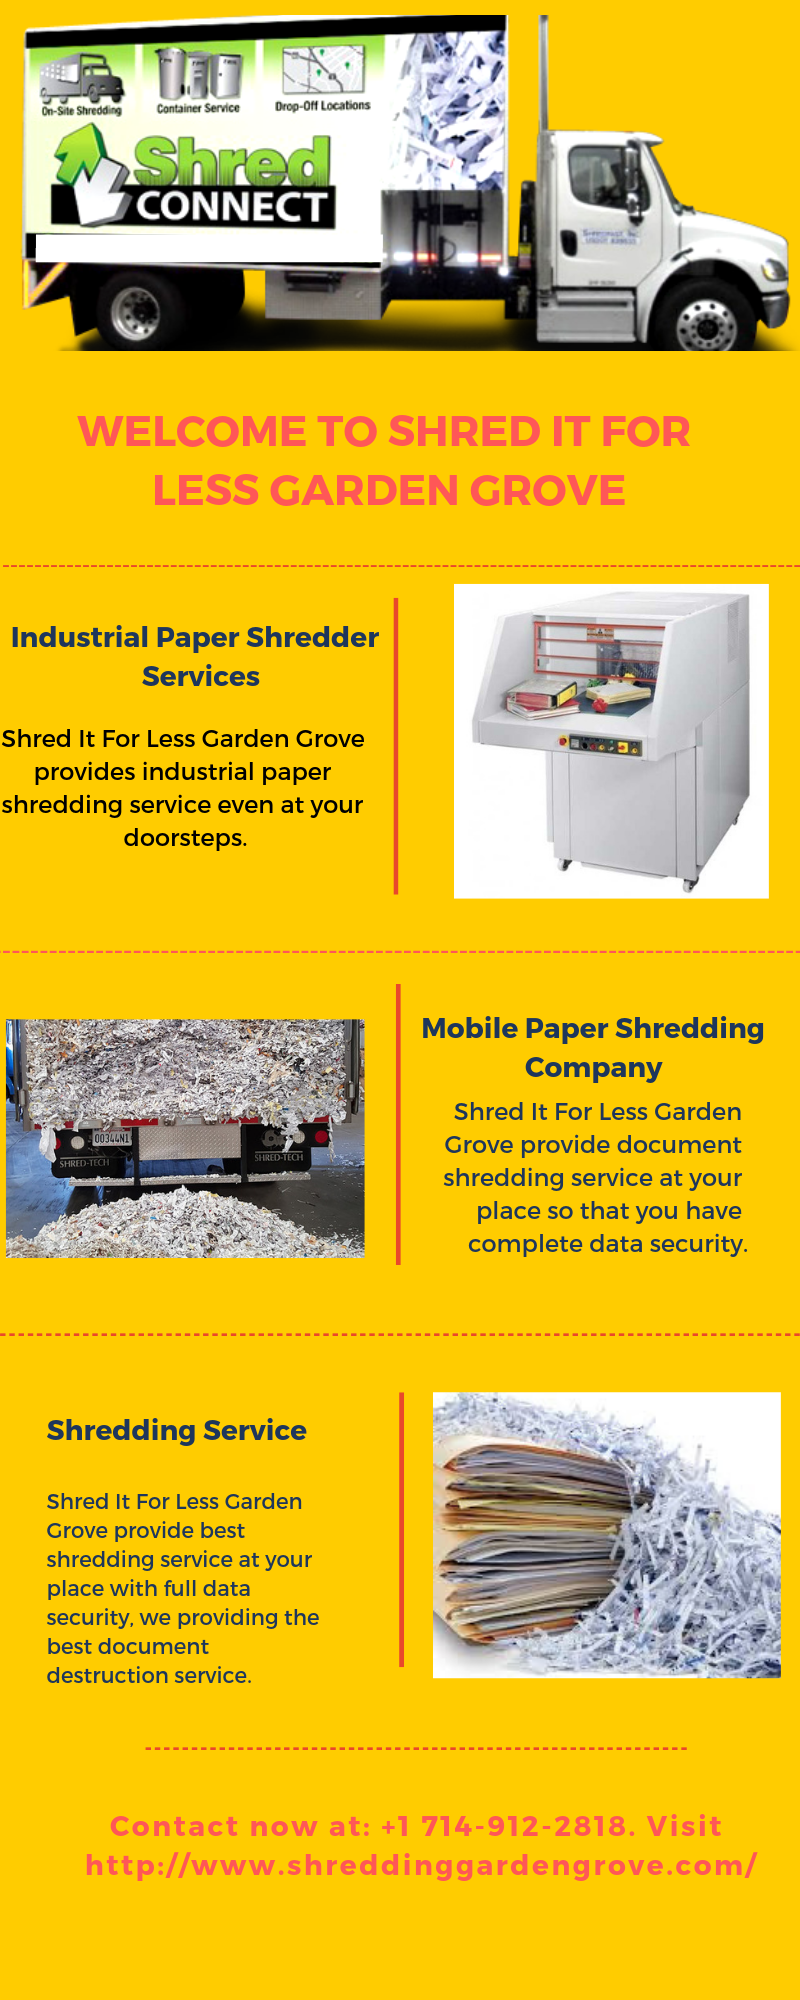 Are You Looking For Industrial Paper Shredder Service Shred It For Less Garden Grove Provides Industrial Paper S Shredding Service Paper Shredder Garden Grove